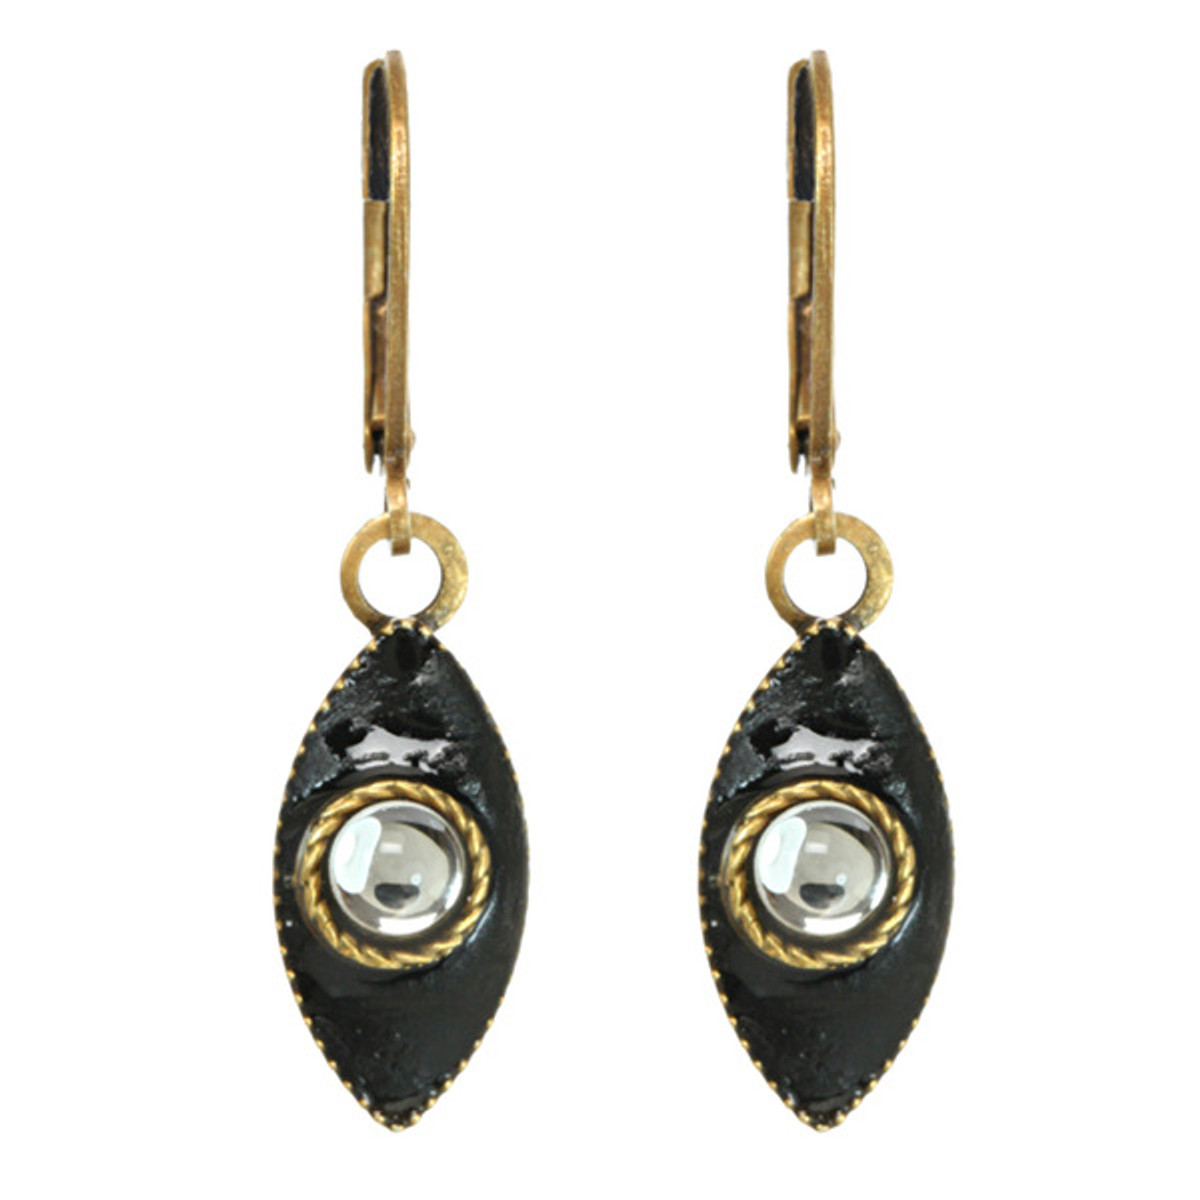 Deco Earrings From Michal Golan Jewelry